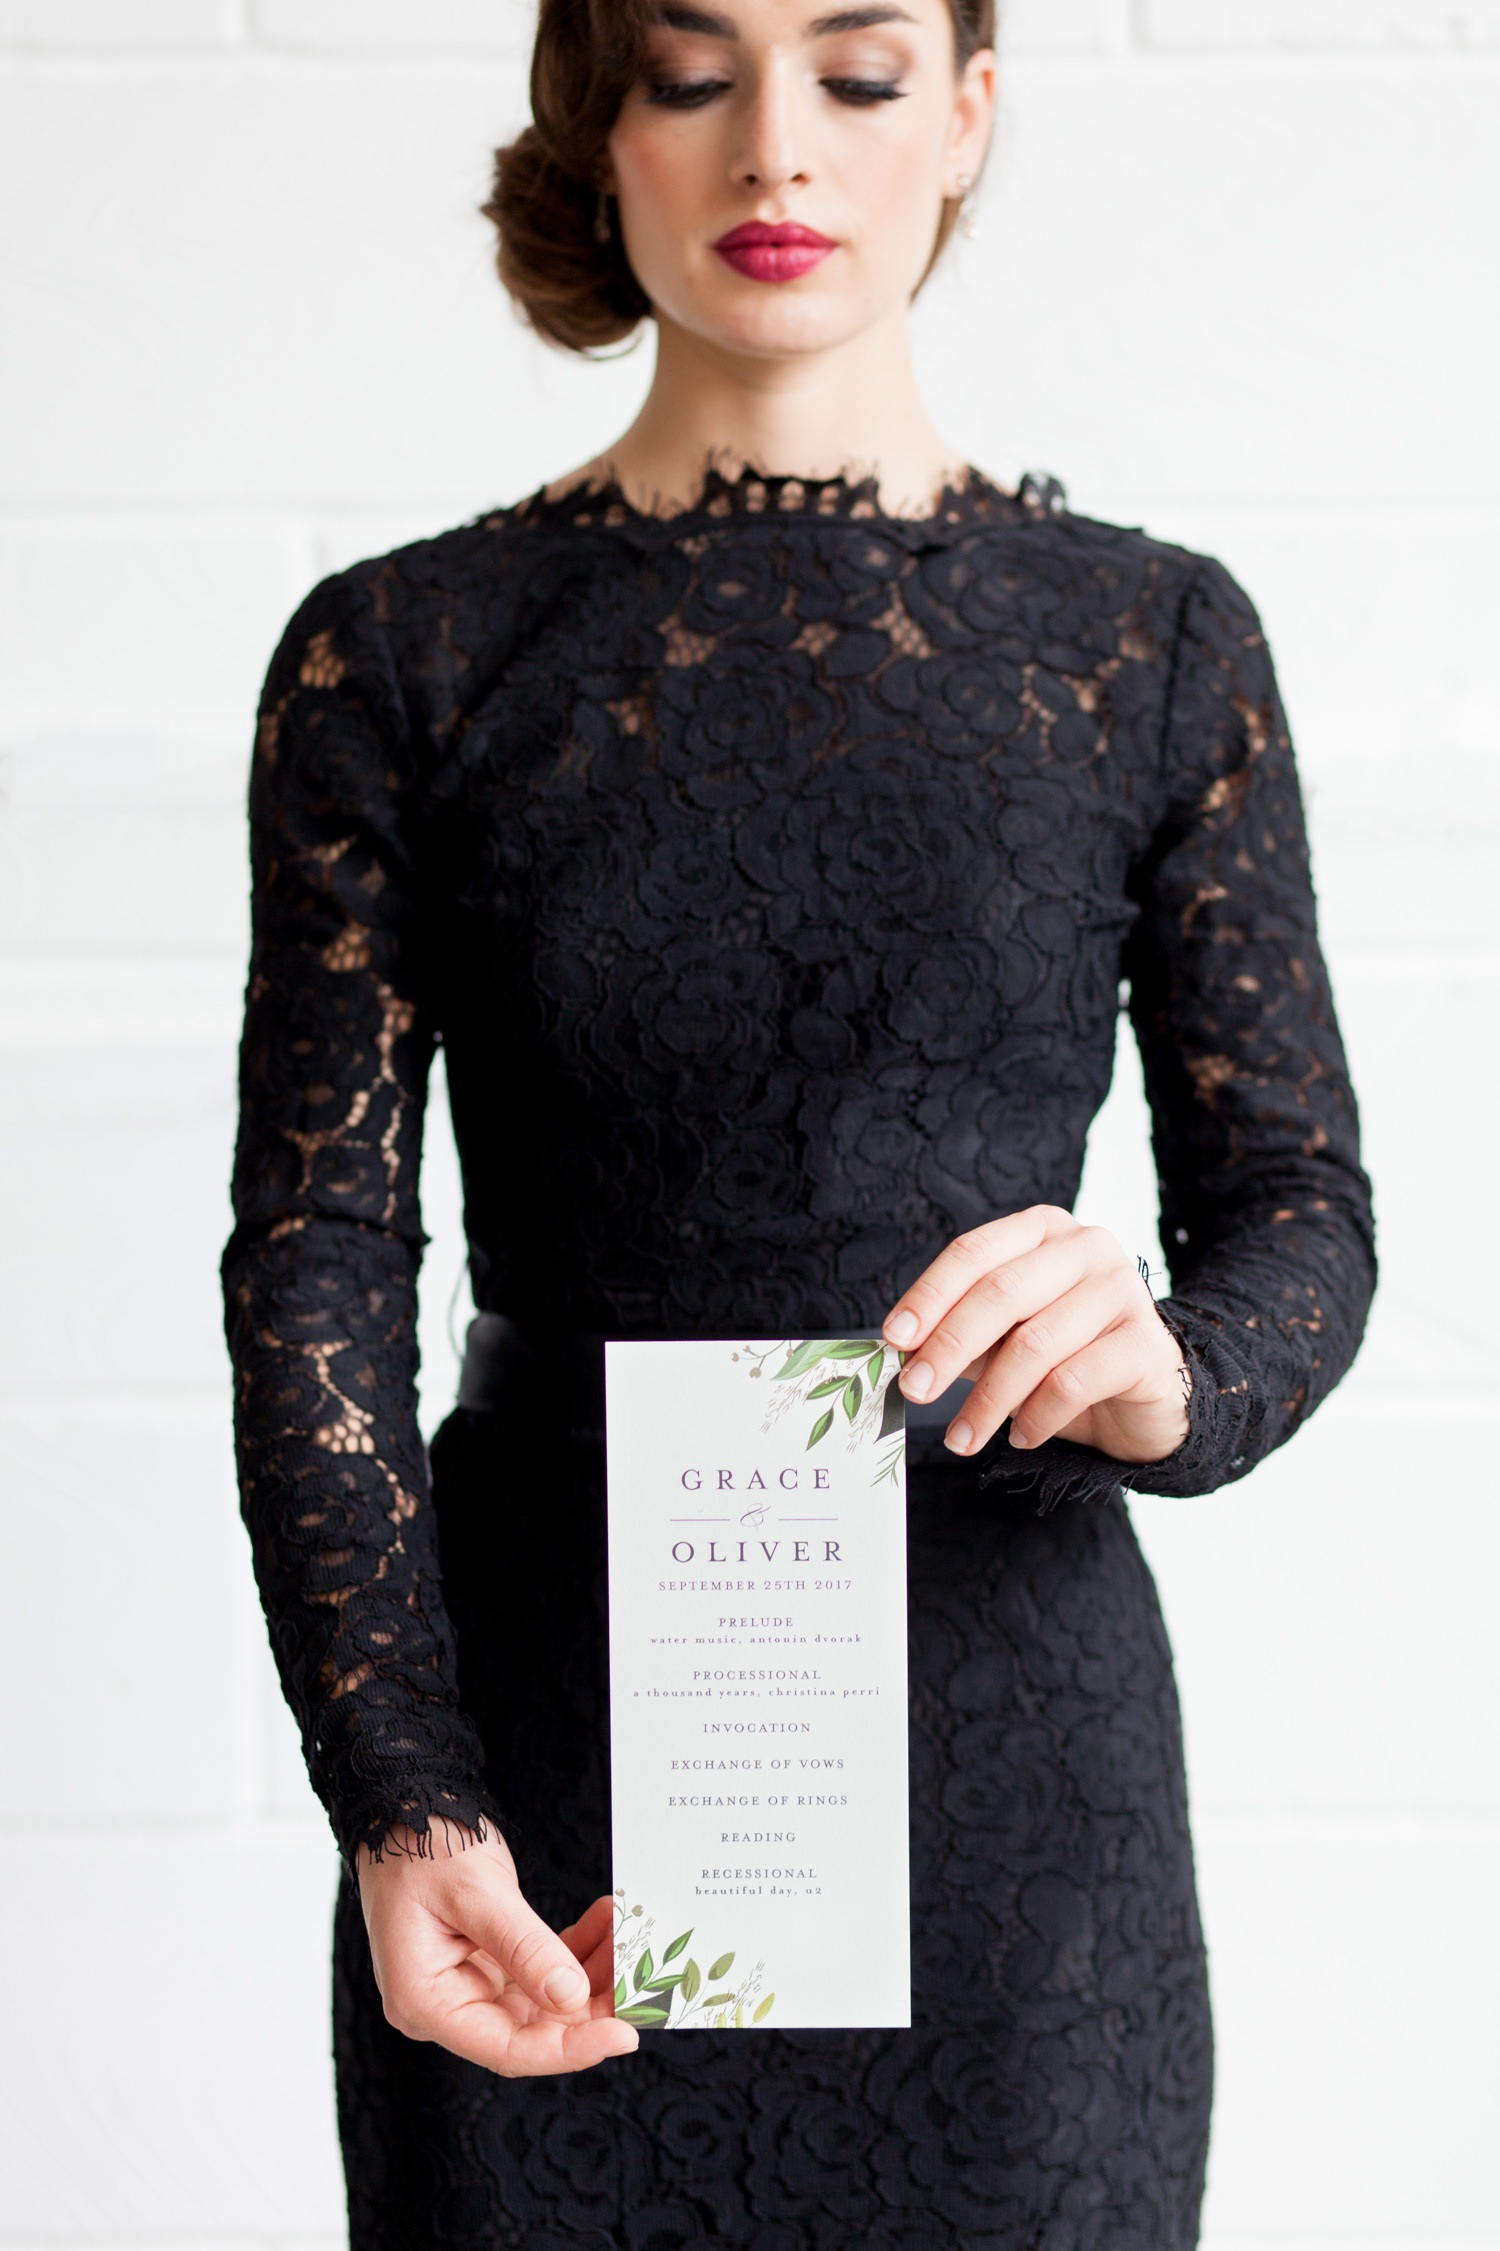 London Warehouse Wedding 1 - bridesmaid holds a wedding invitation